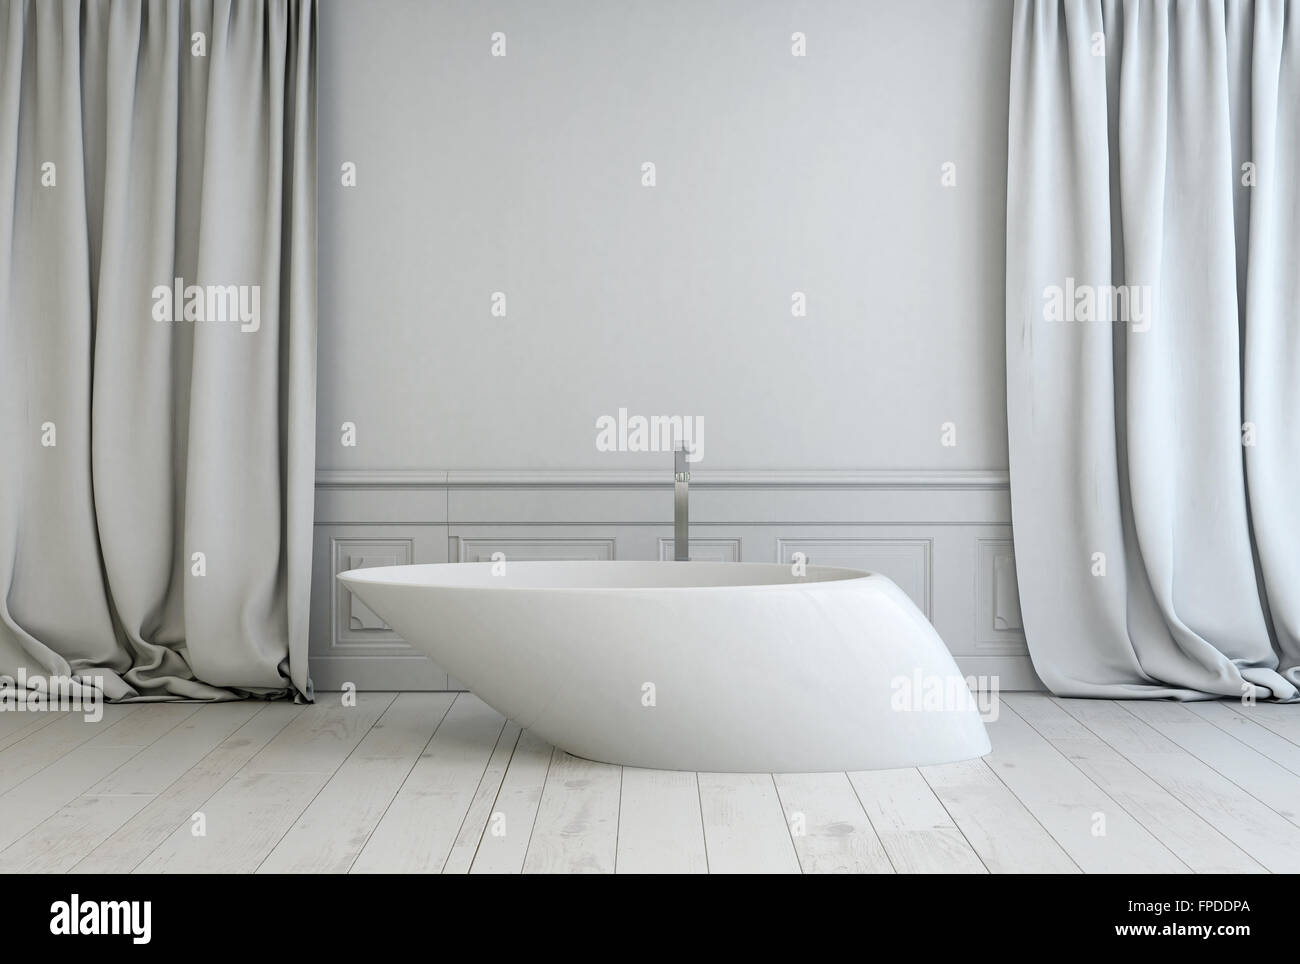 Contemporary freestanding white bath tub with an angled design in a ...